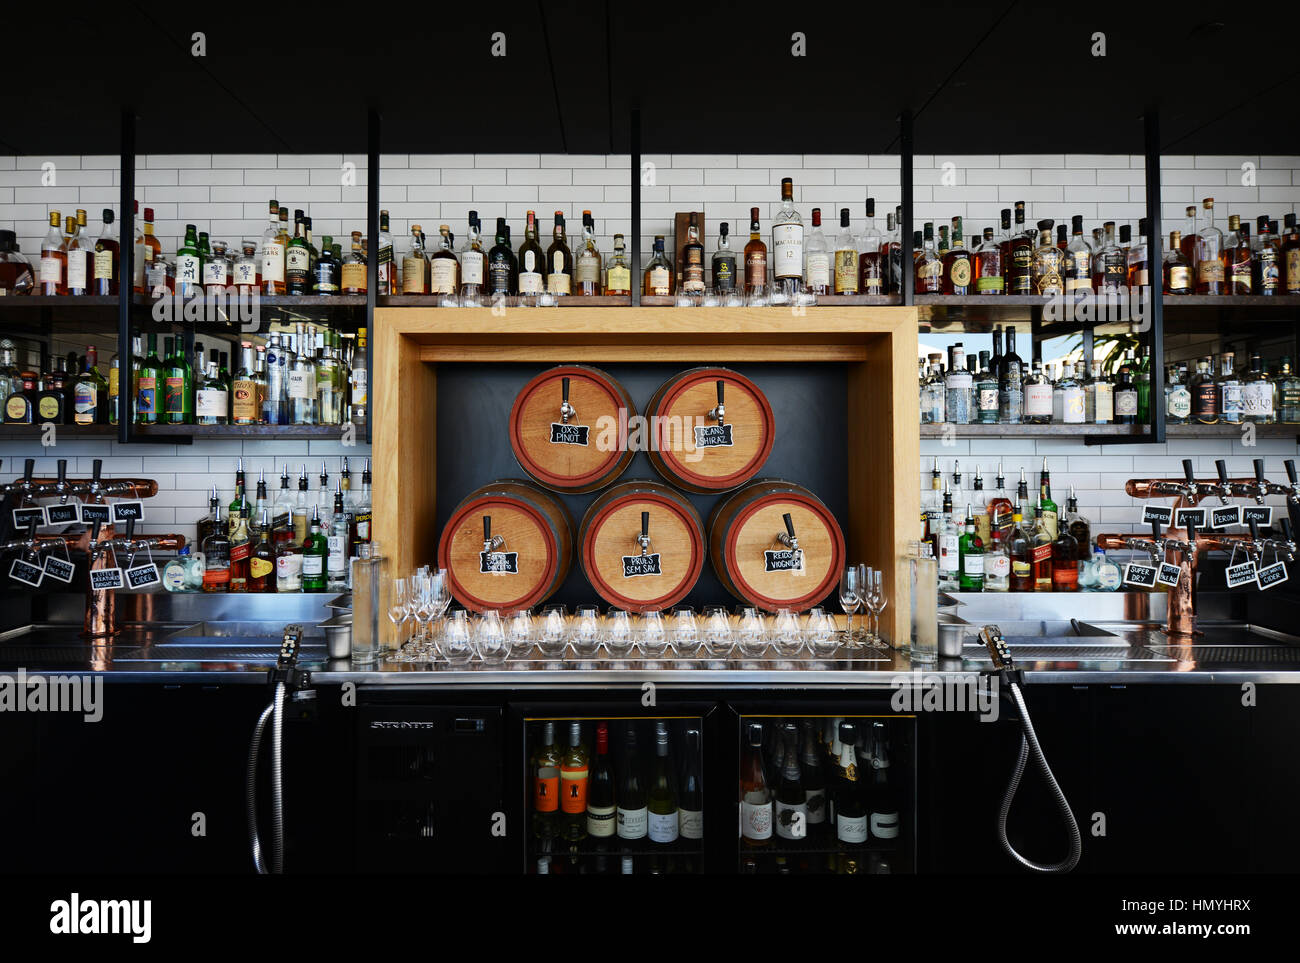 The trendy 2kw rooftop bar in Adelaide, Australia. - Stock Image